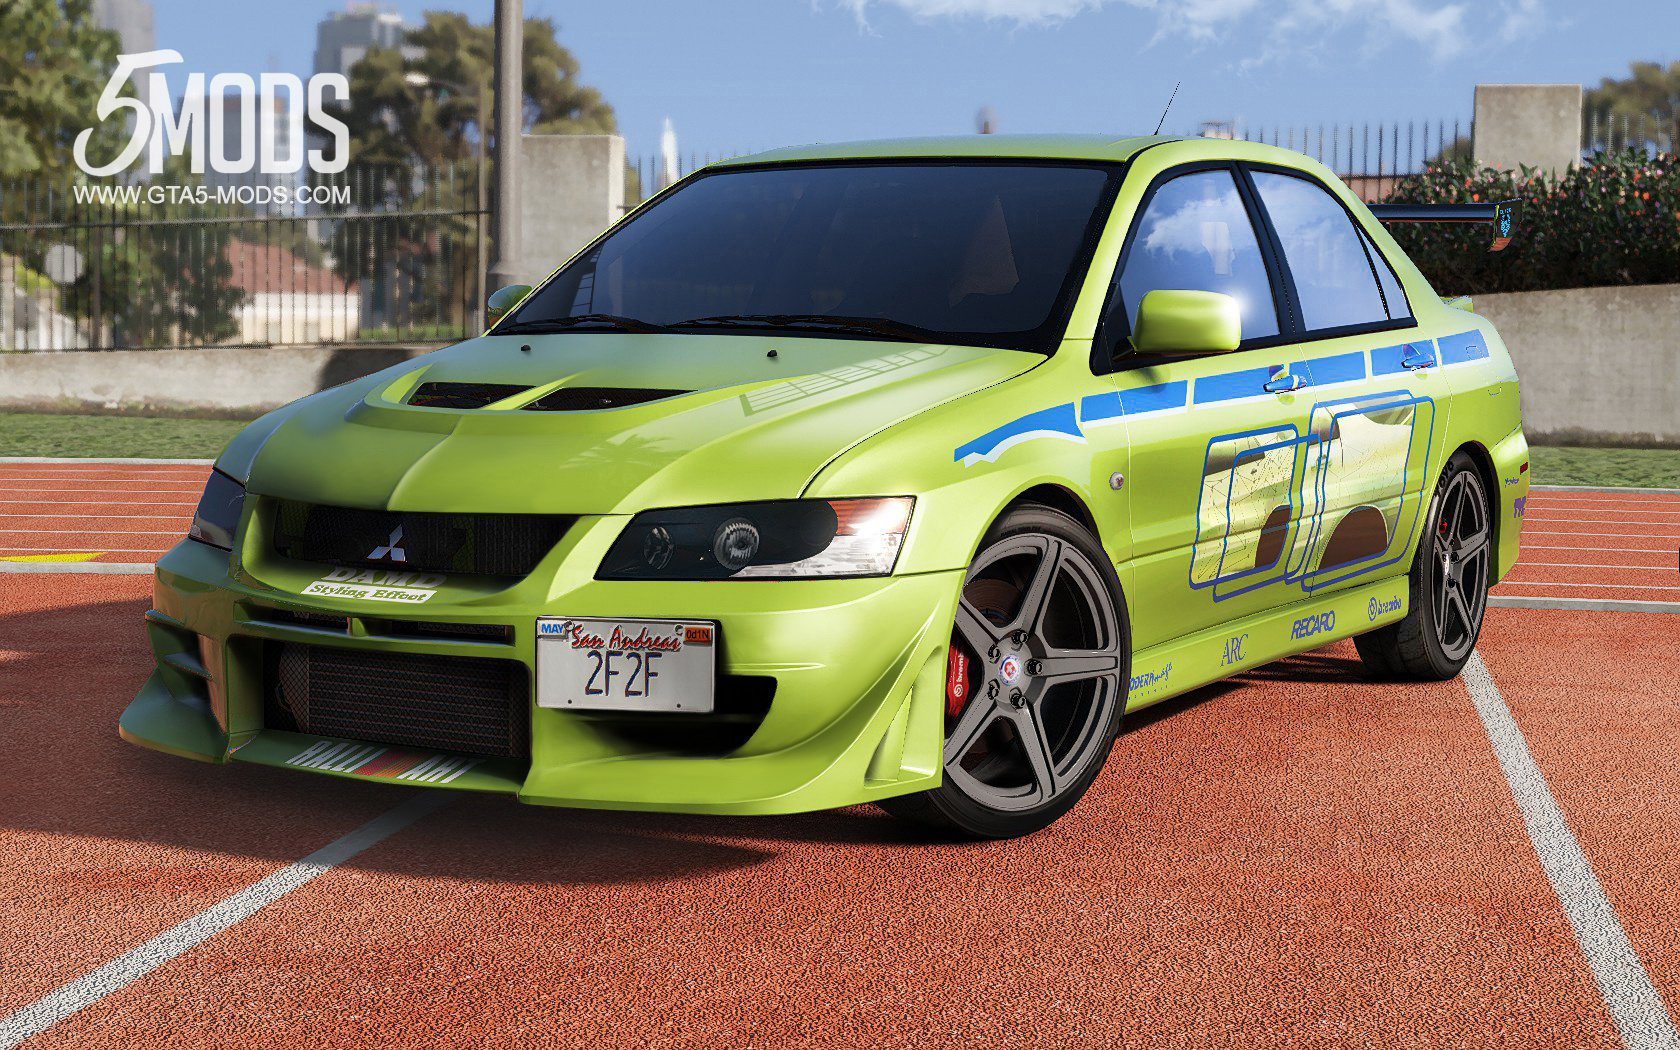 mitsubishi lancer evolution 2fast 2furious - gta5-mods